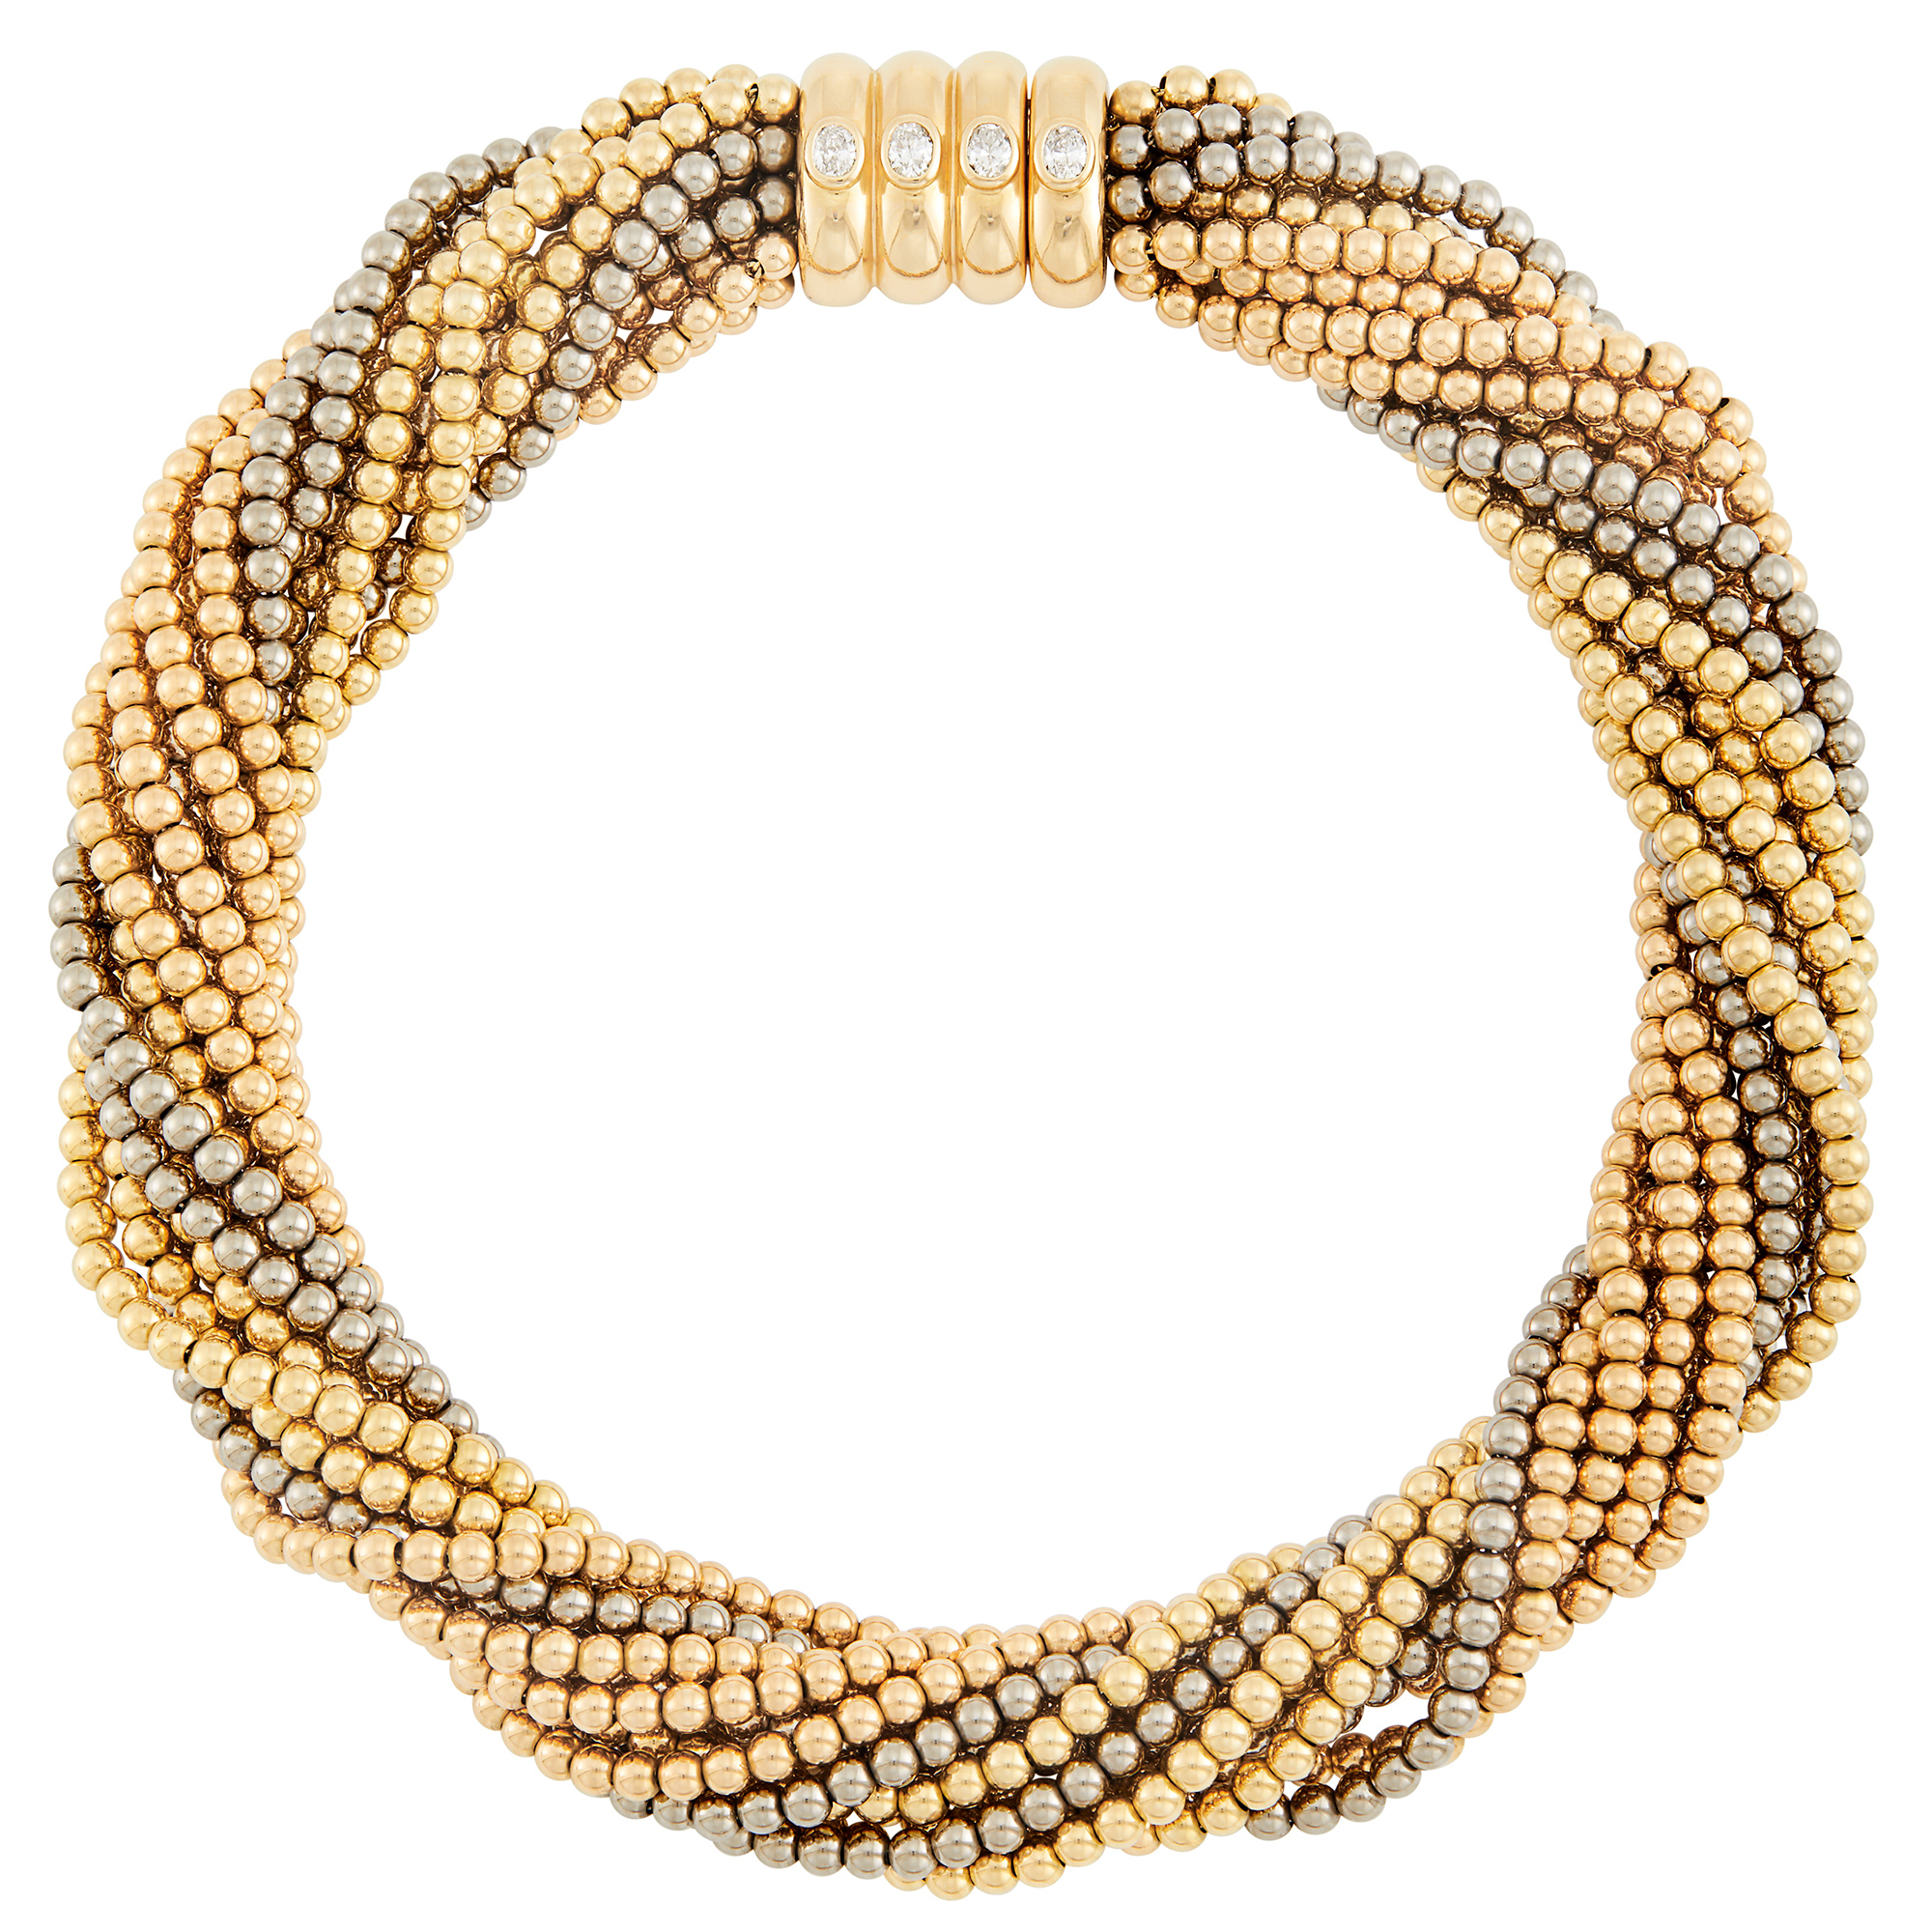 Lot image - Multistrand Tricolor Gold Bead and Diamond Torsade Necklace, Poiray, France